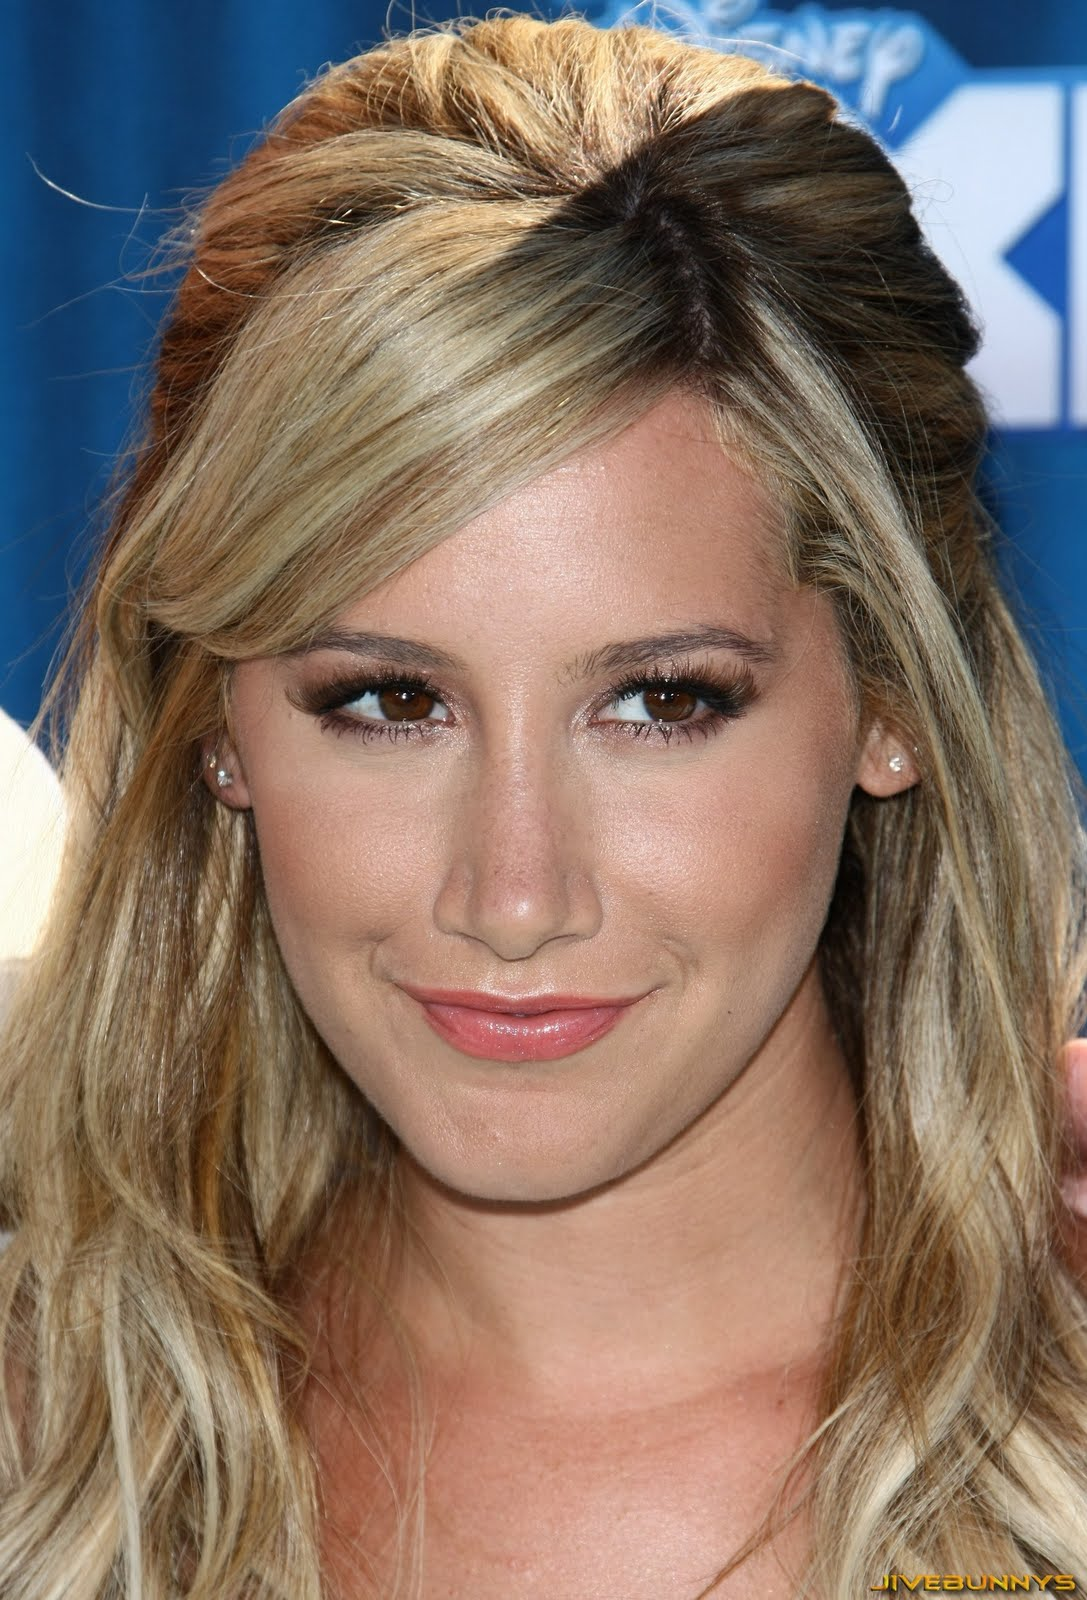 ashley tisdale full naked